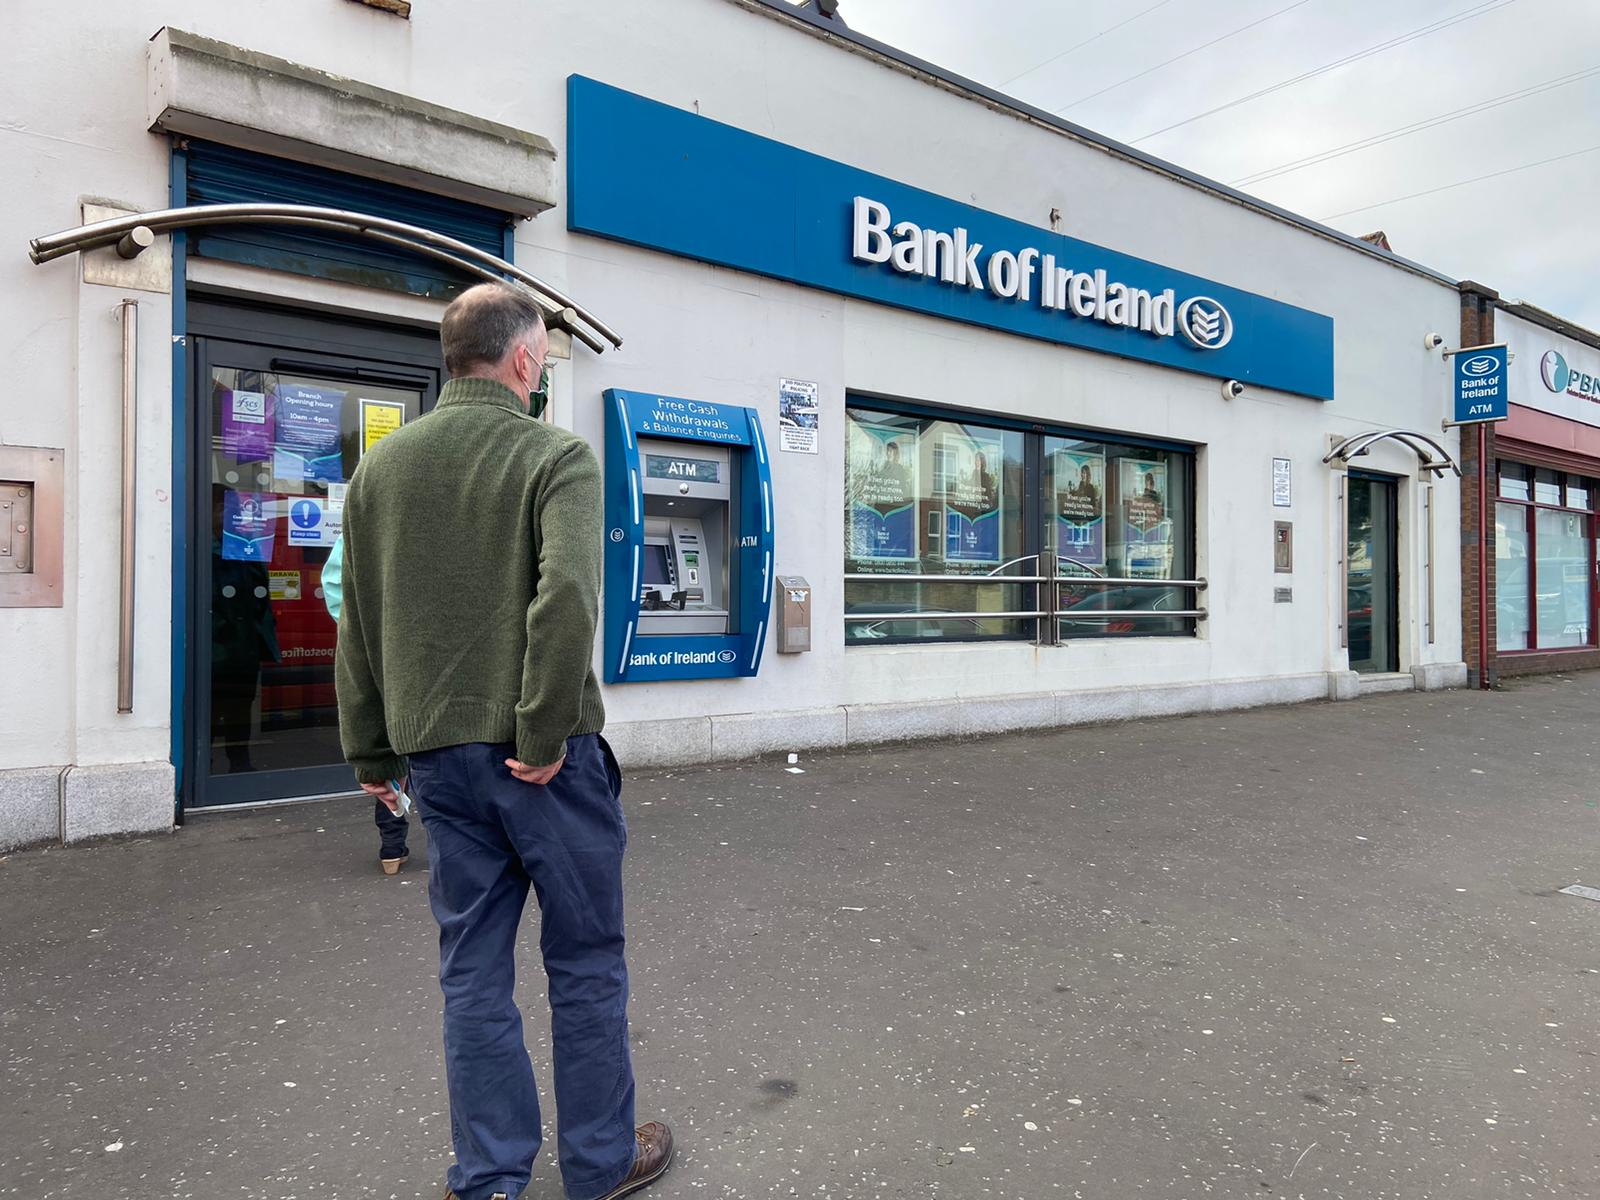 WITHDRAWN: The Bank of Ireland\'s Andersonstown branch will remain open